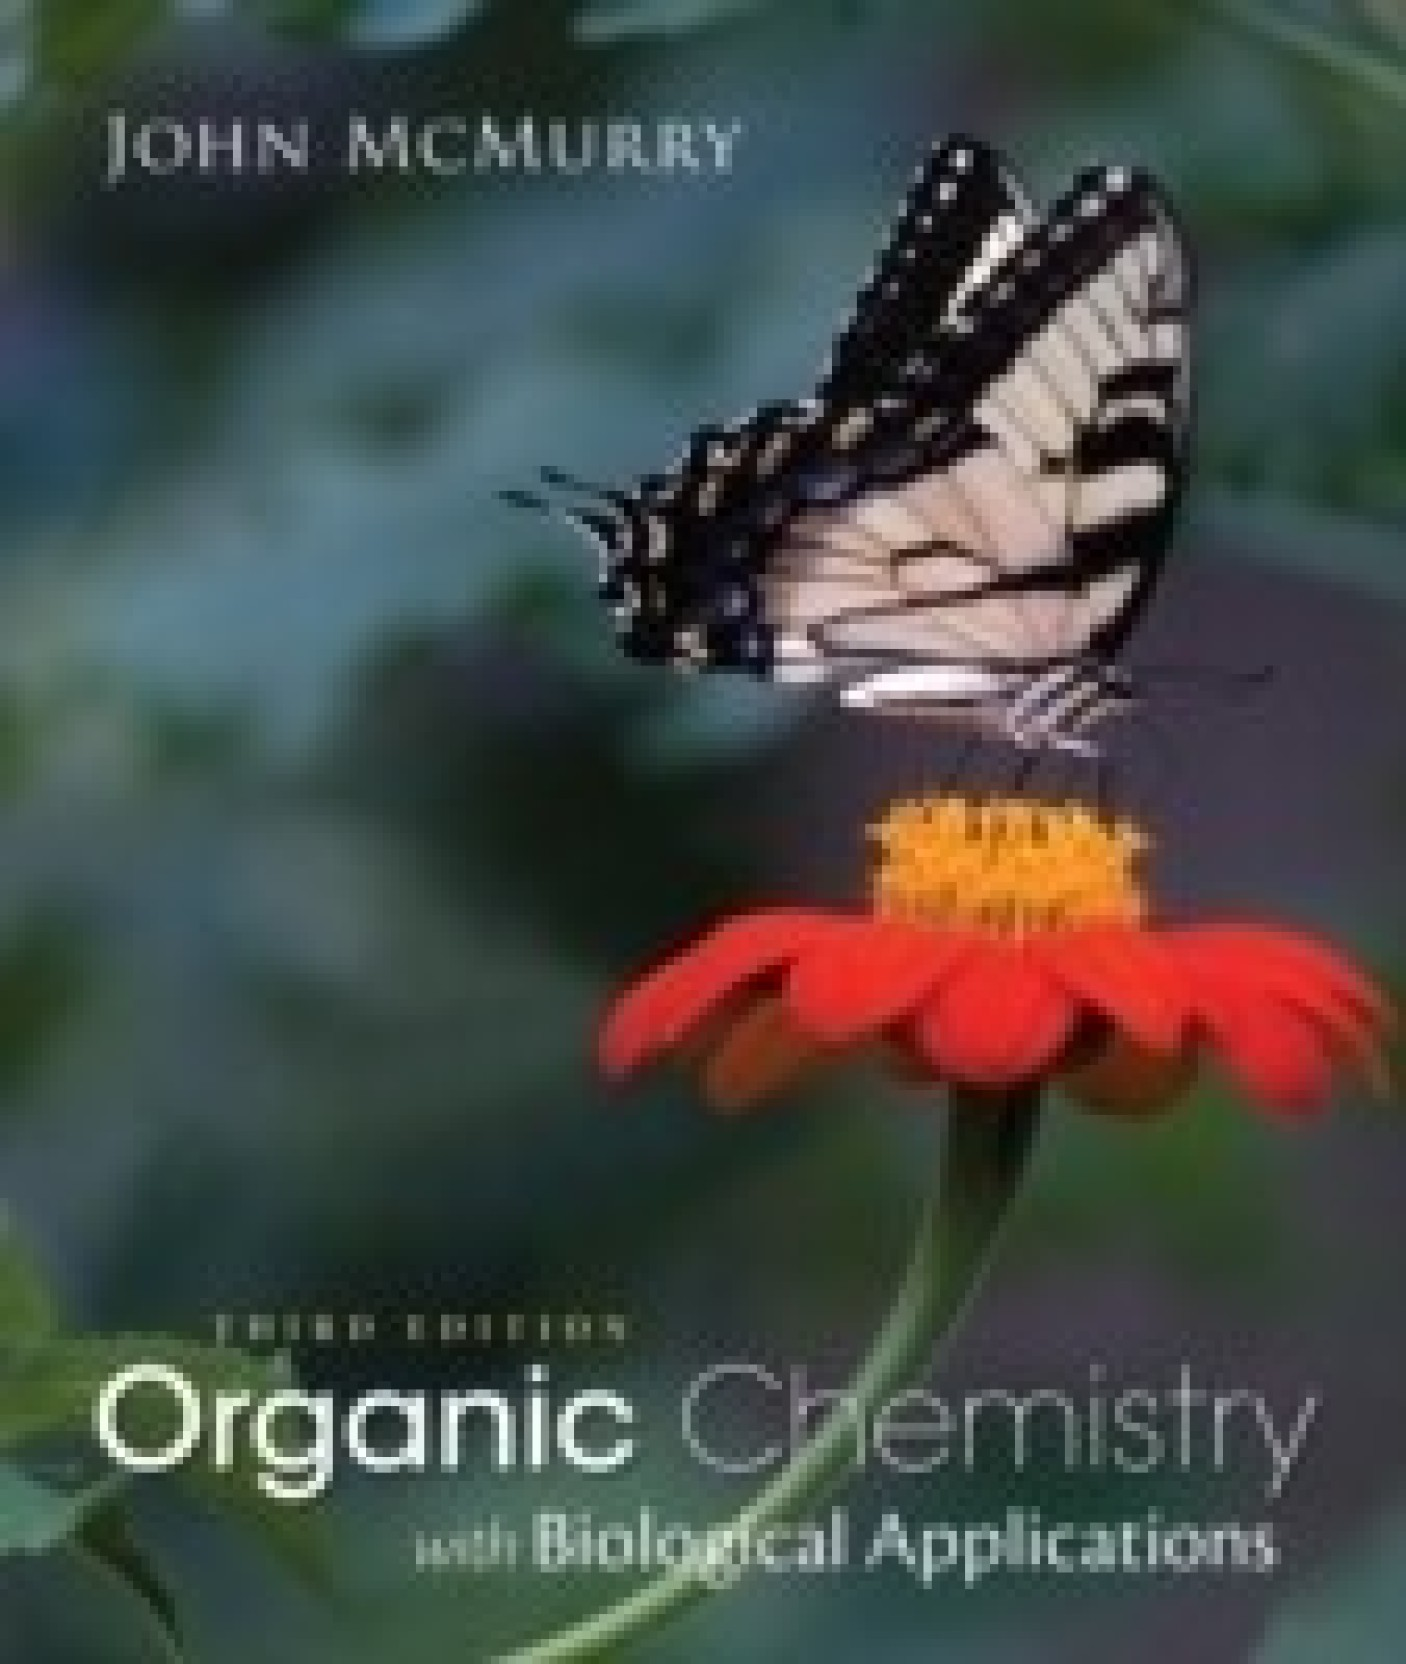 ... Solutions Manual for McMurry's Organic Chemistry: With Biological  Applications, 3rd. Share